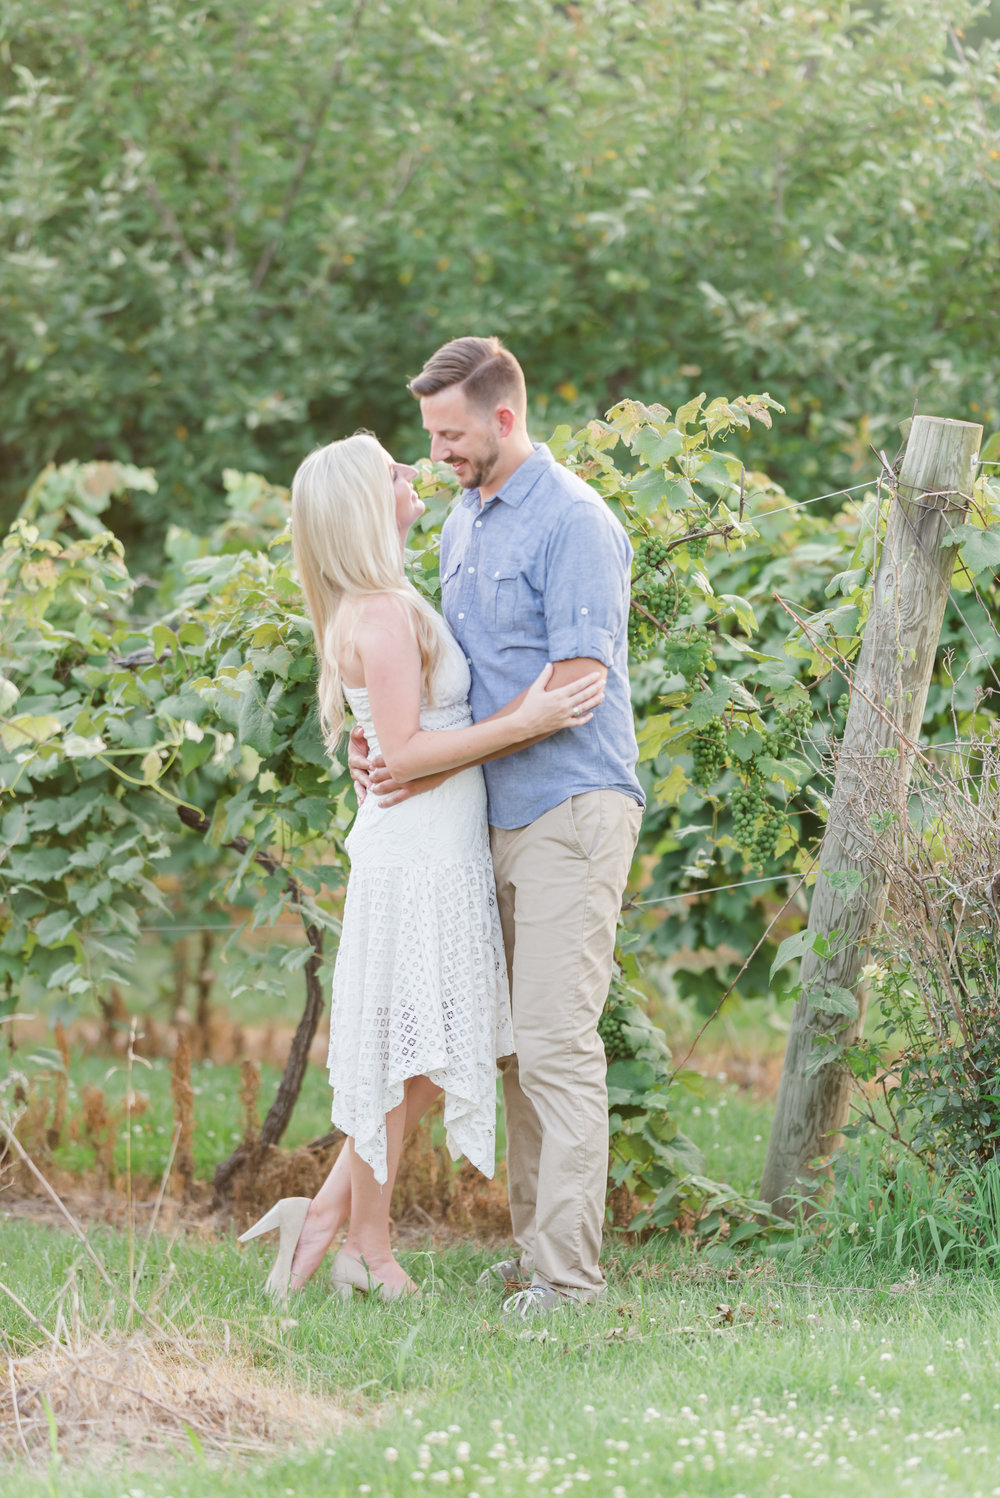 Best Engagement Session Locations Indianapolis Wineries and Vineyards